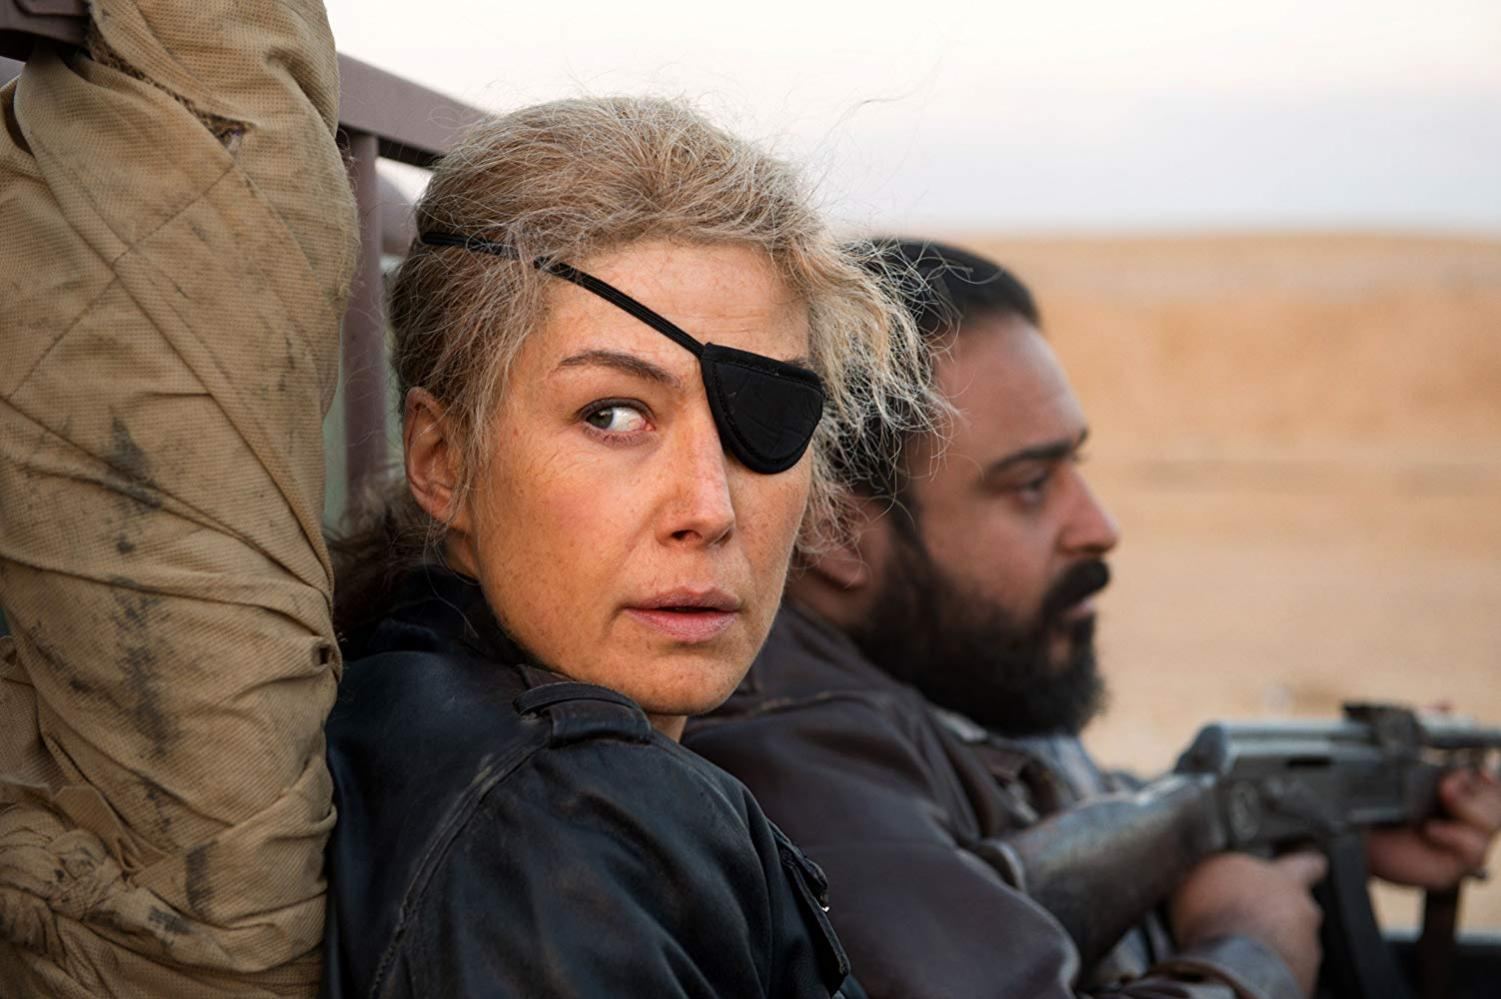 Marie Colvin (Pike) always needing to look over her shoulder in war zones.